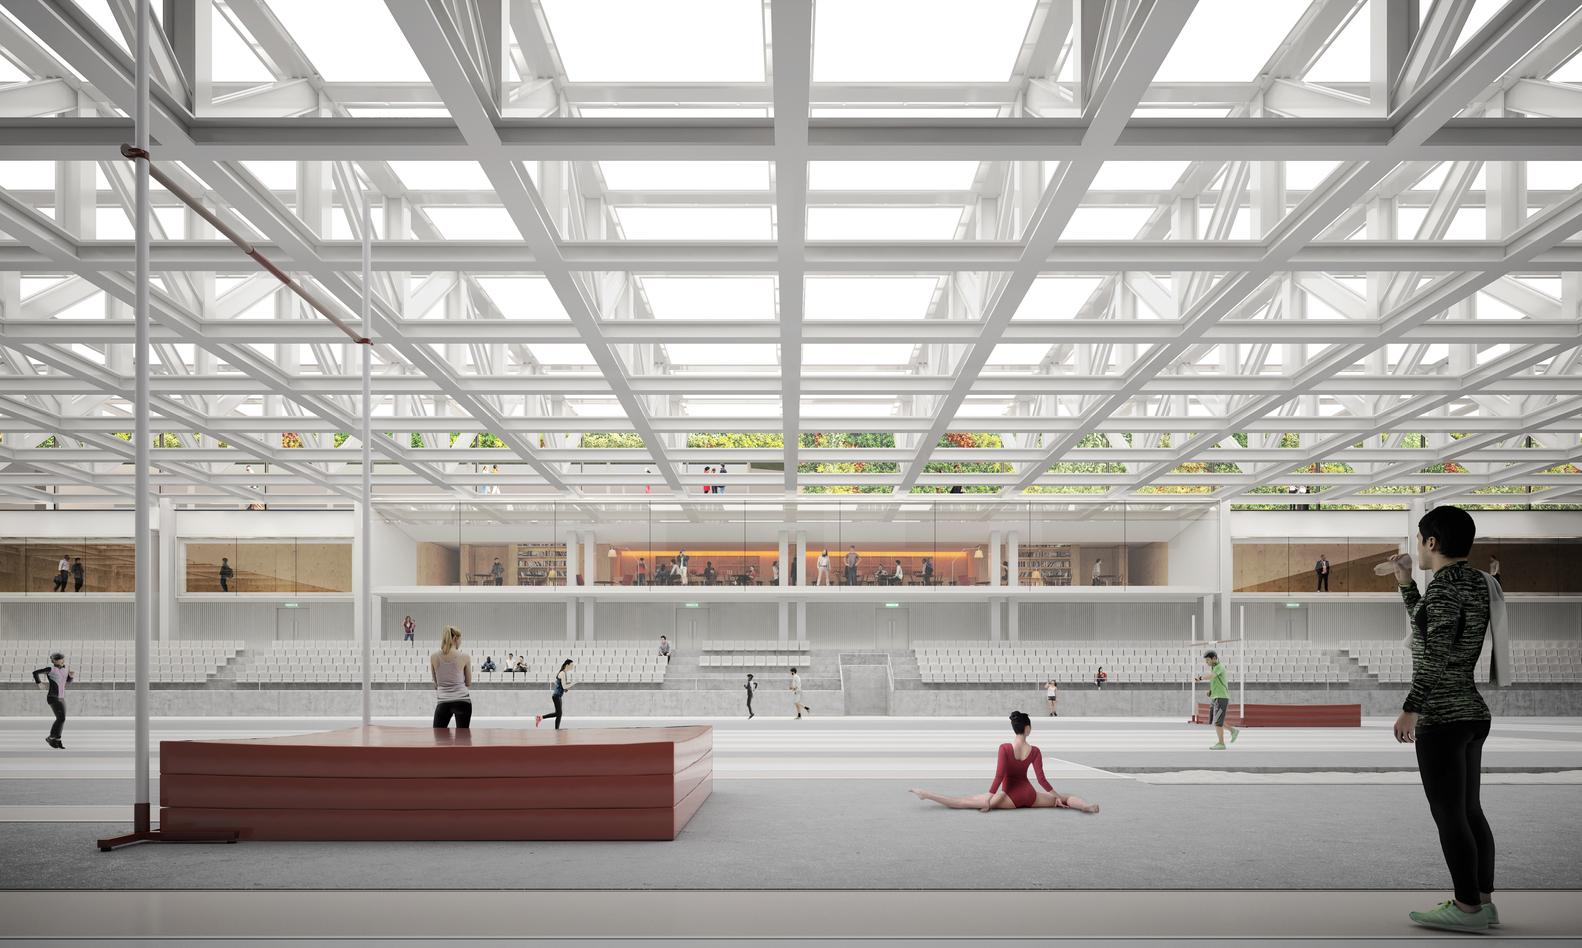 A bowling alley, gymnasium and athletics hall will organically into one another / SCAU